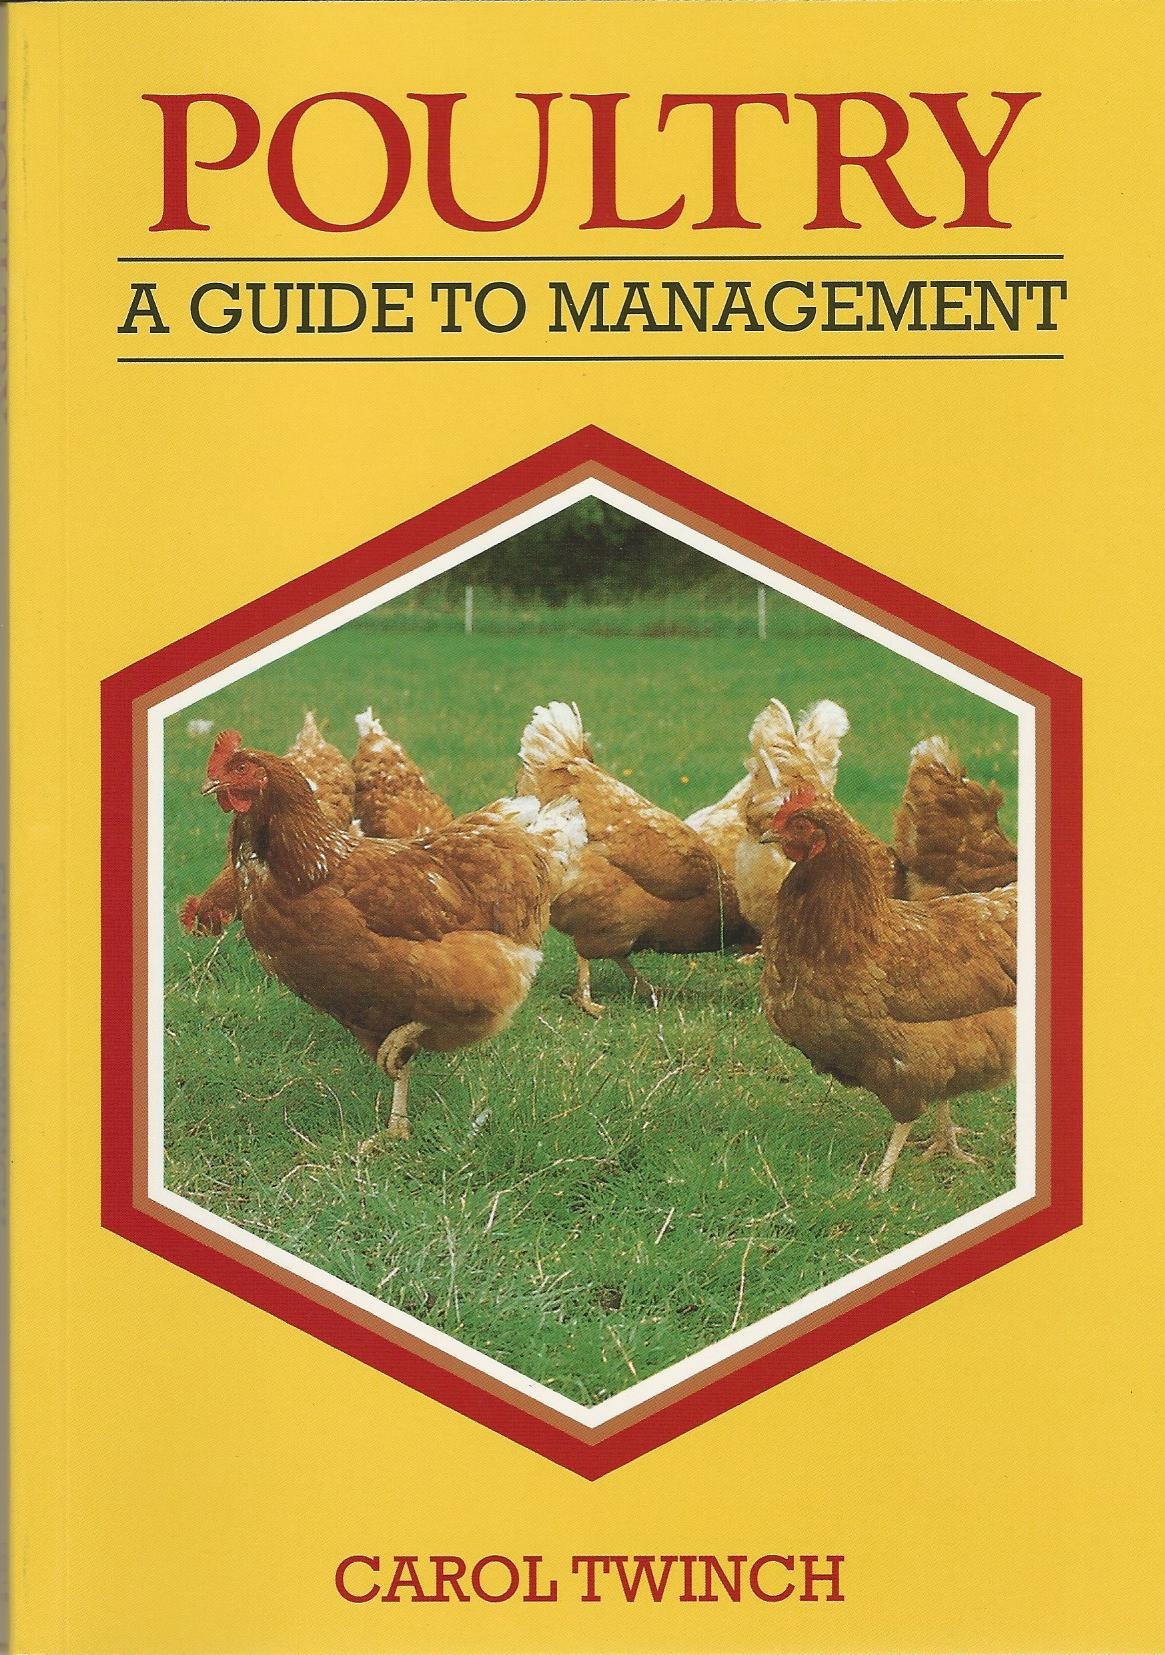 Image for Poultry: A Guide to Management.